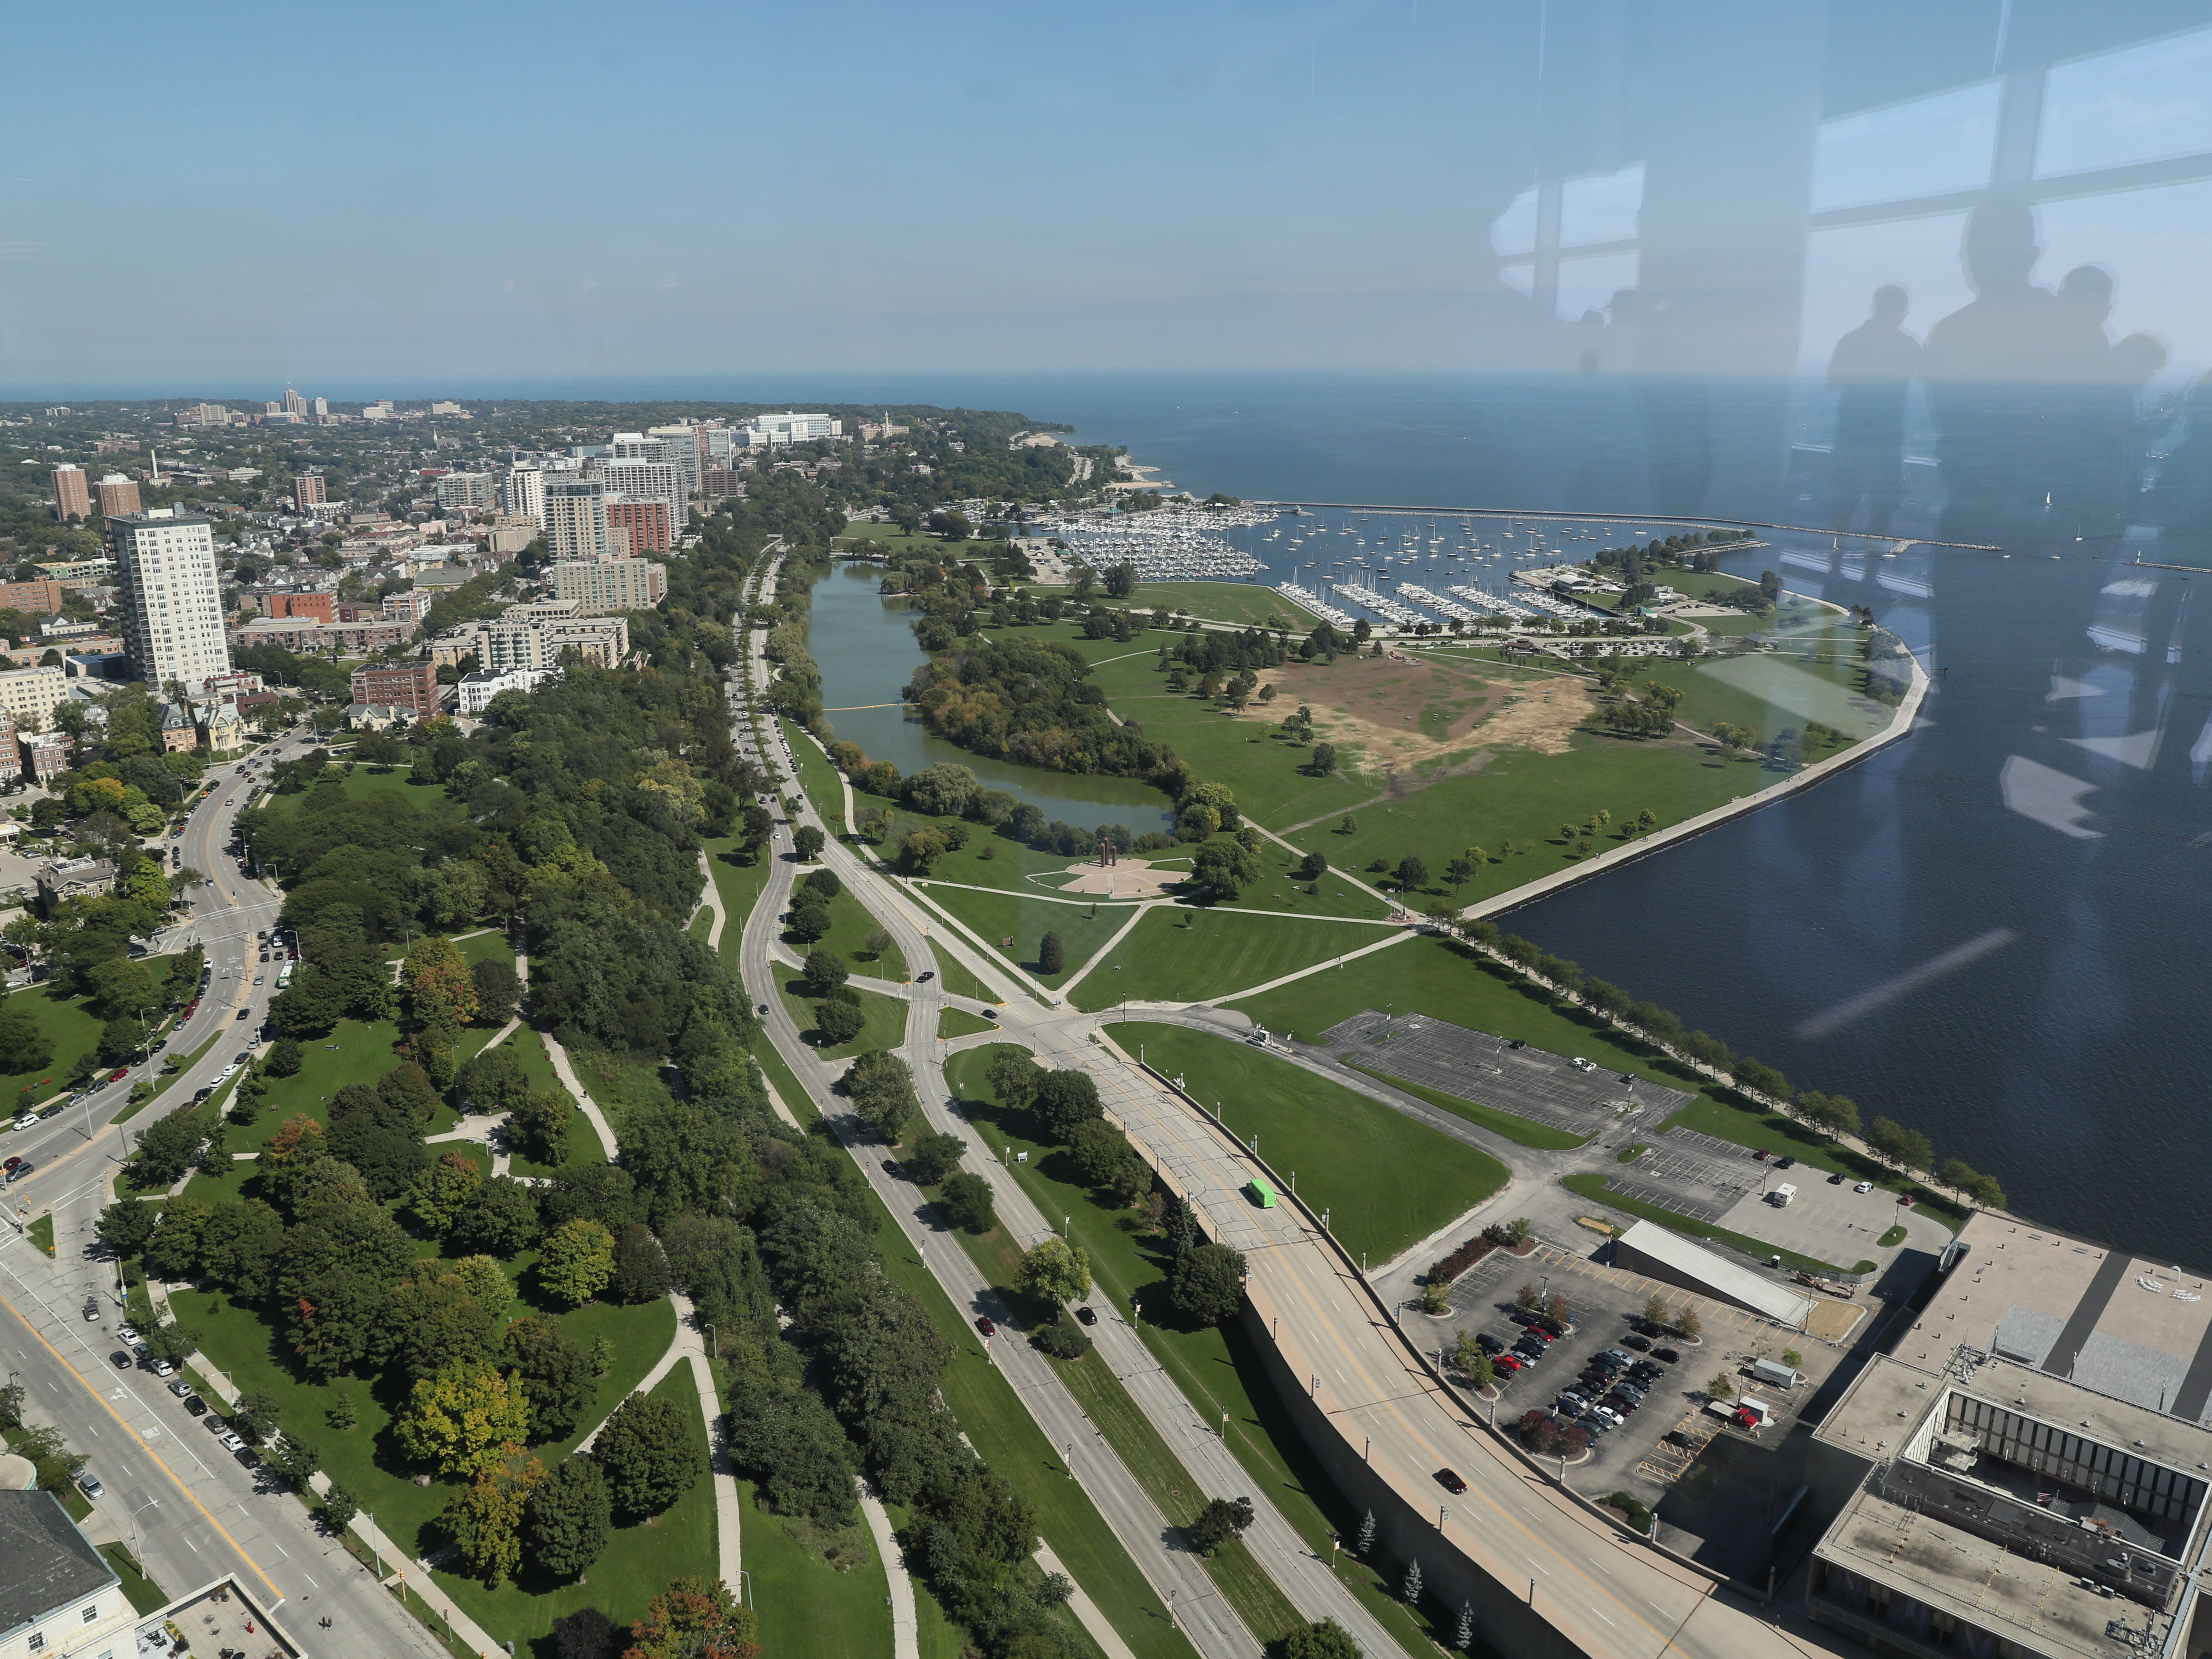 A view looking north along the lakefront from the 32nd floor of the new Northwestern Mutual Tower and Commons during Doors Open Milwaukee 2018 on Sunday.